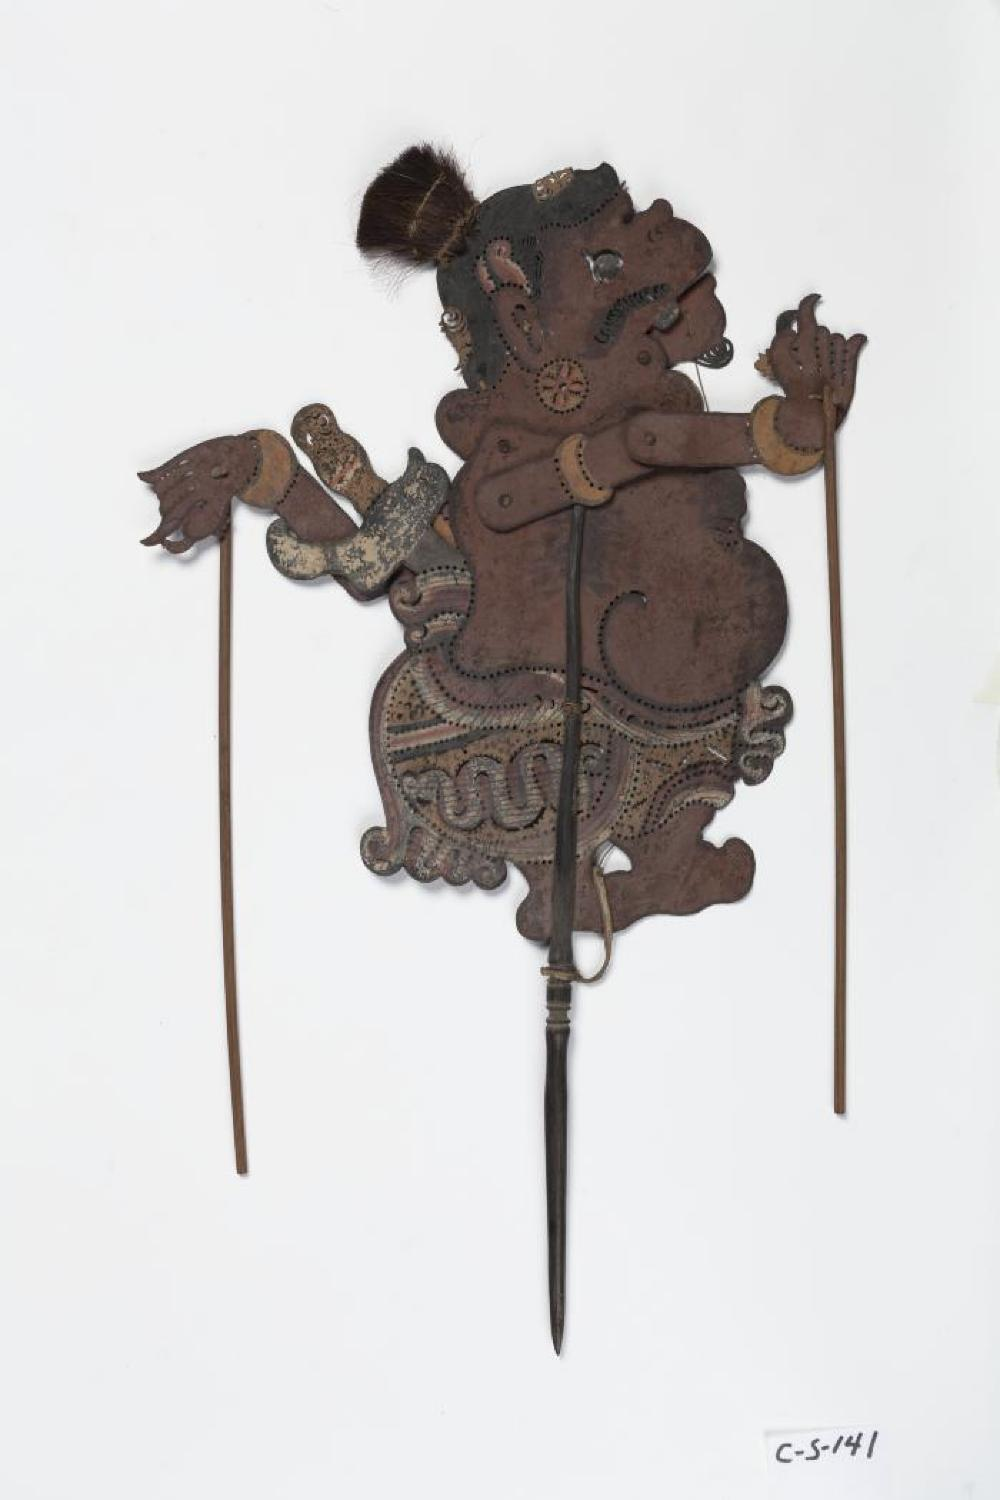 Balinese; Wayang Kulit Shadow Puppet (Delem); 20th century; Leather, wood; 21 1/8 x 9 1/2 x 1/8 in.; Collection of Isamu Noguchi. (Study Collection; Collectibles, C-S-141)